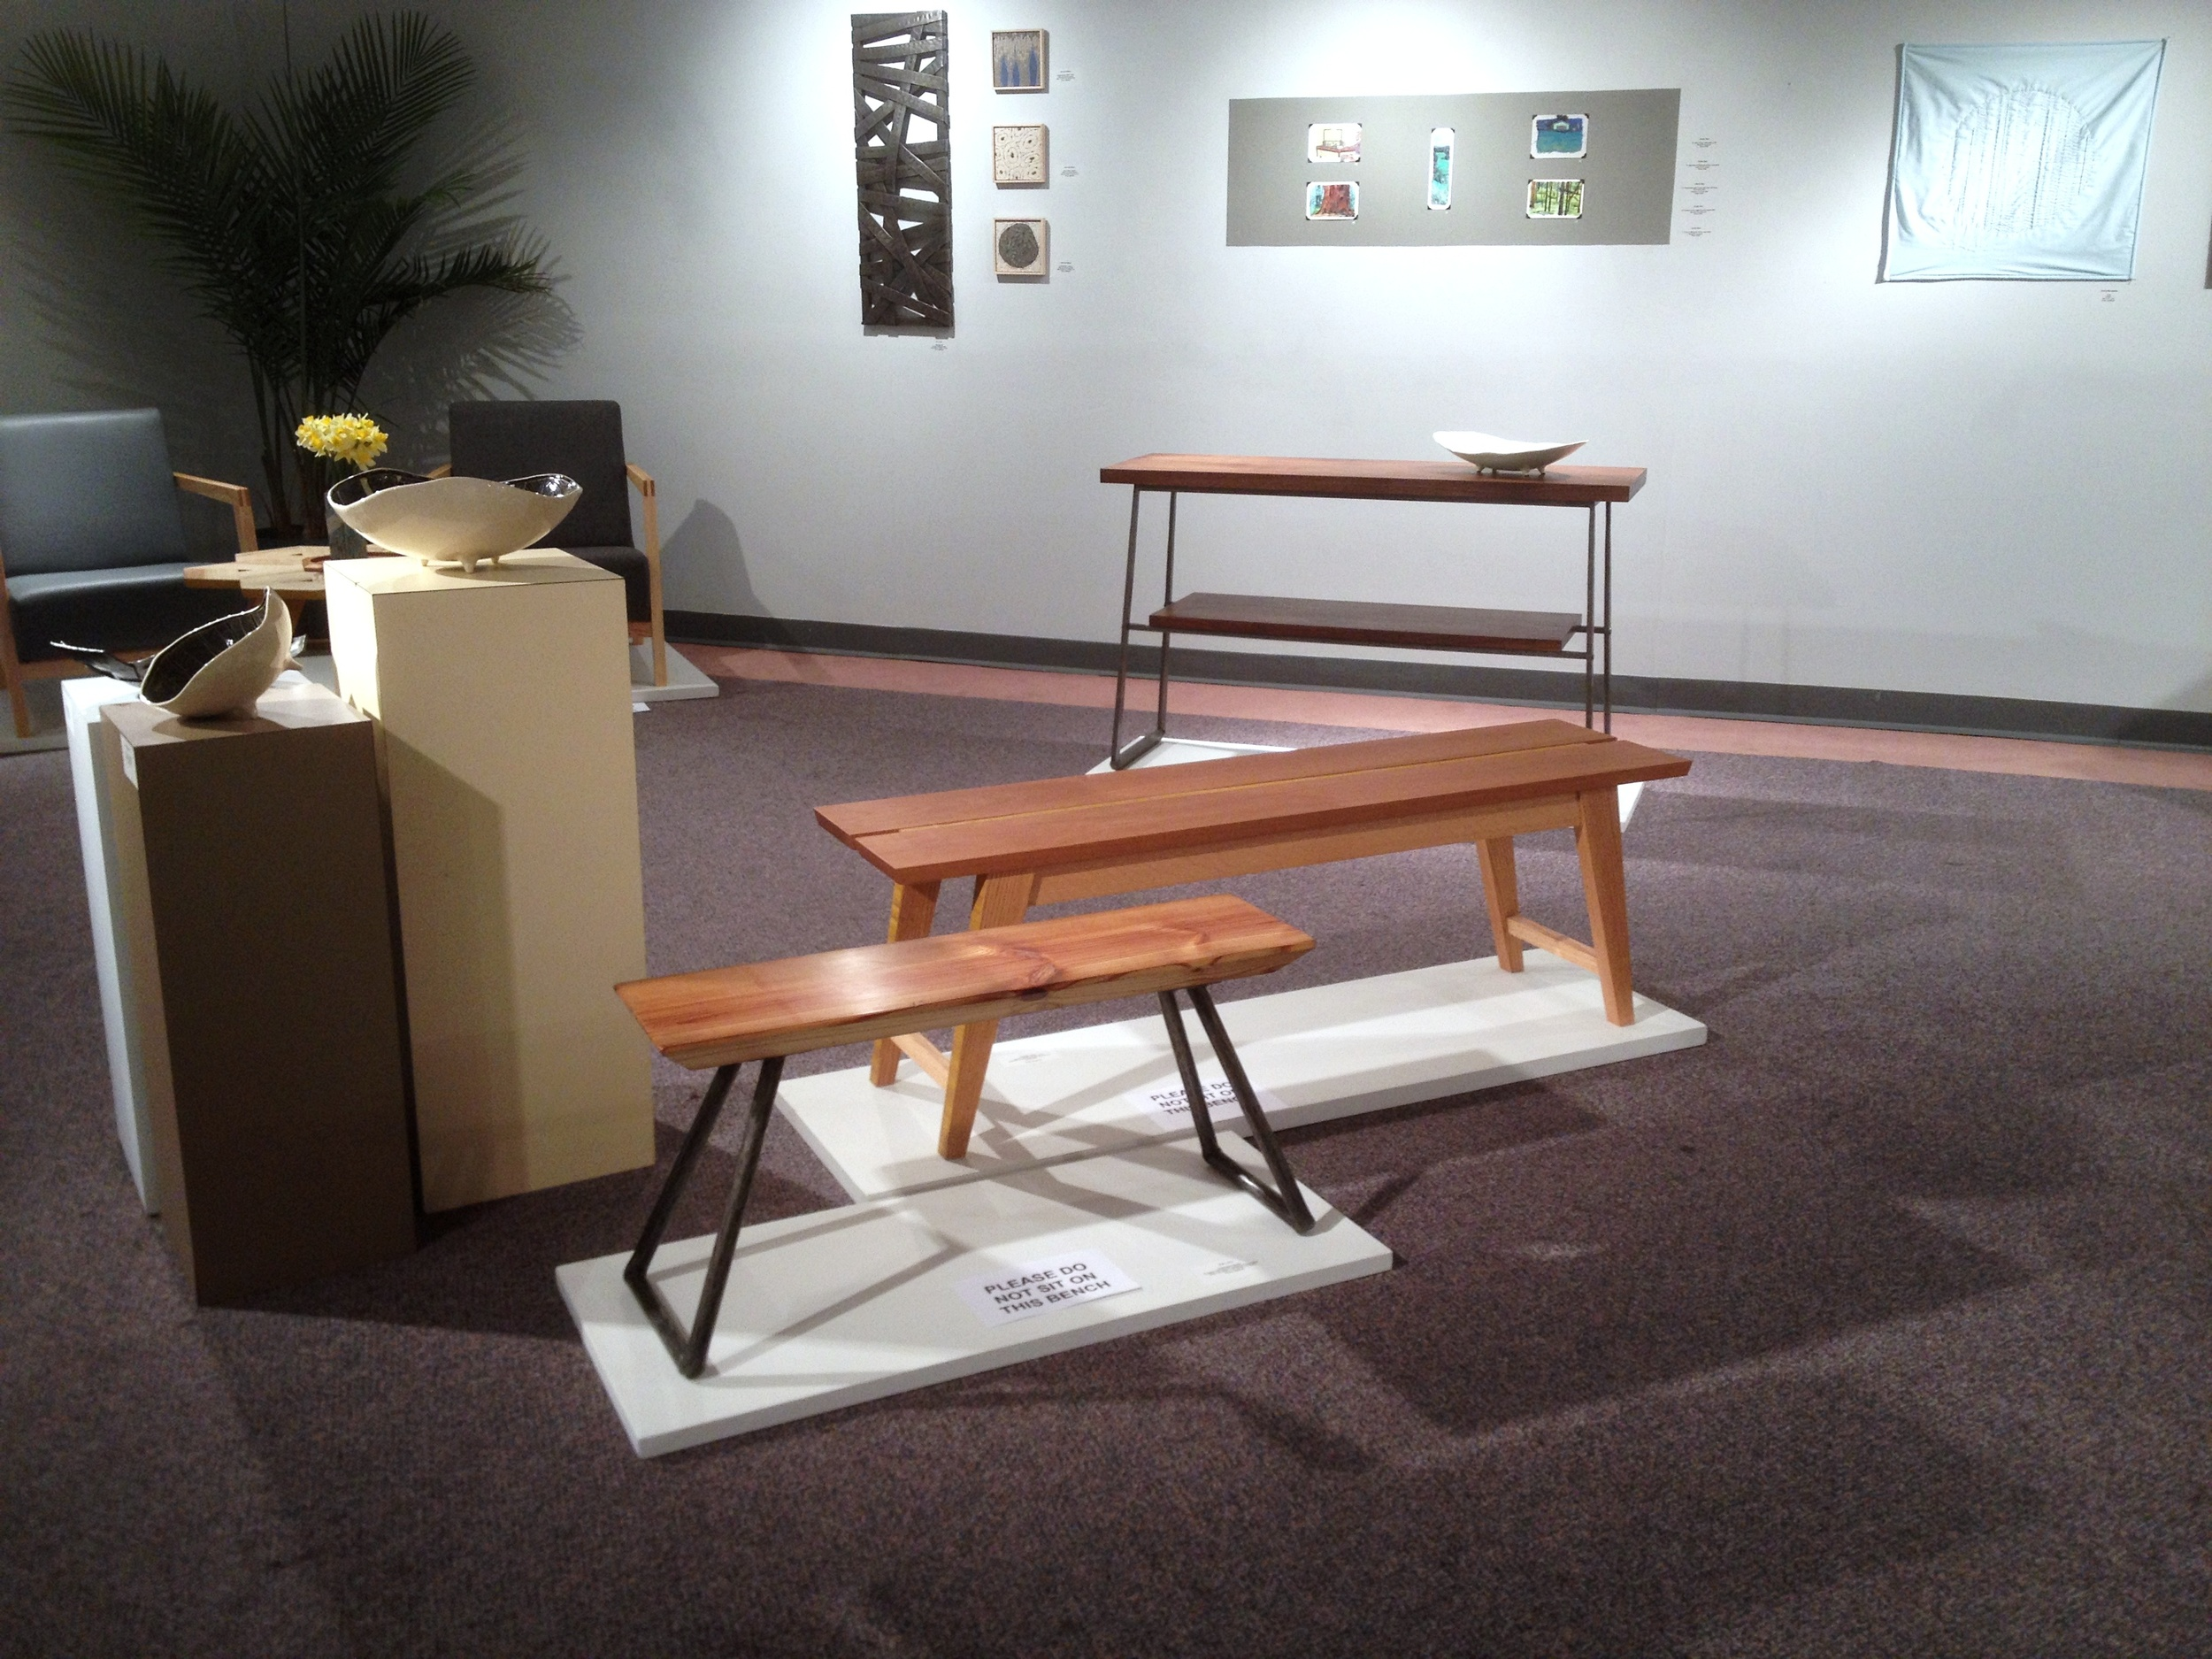 Heart pine and forged steel bench at GROWTH group show